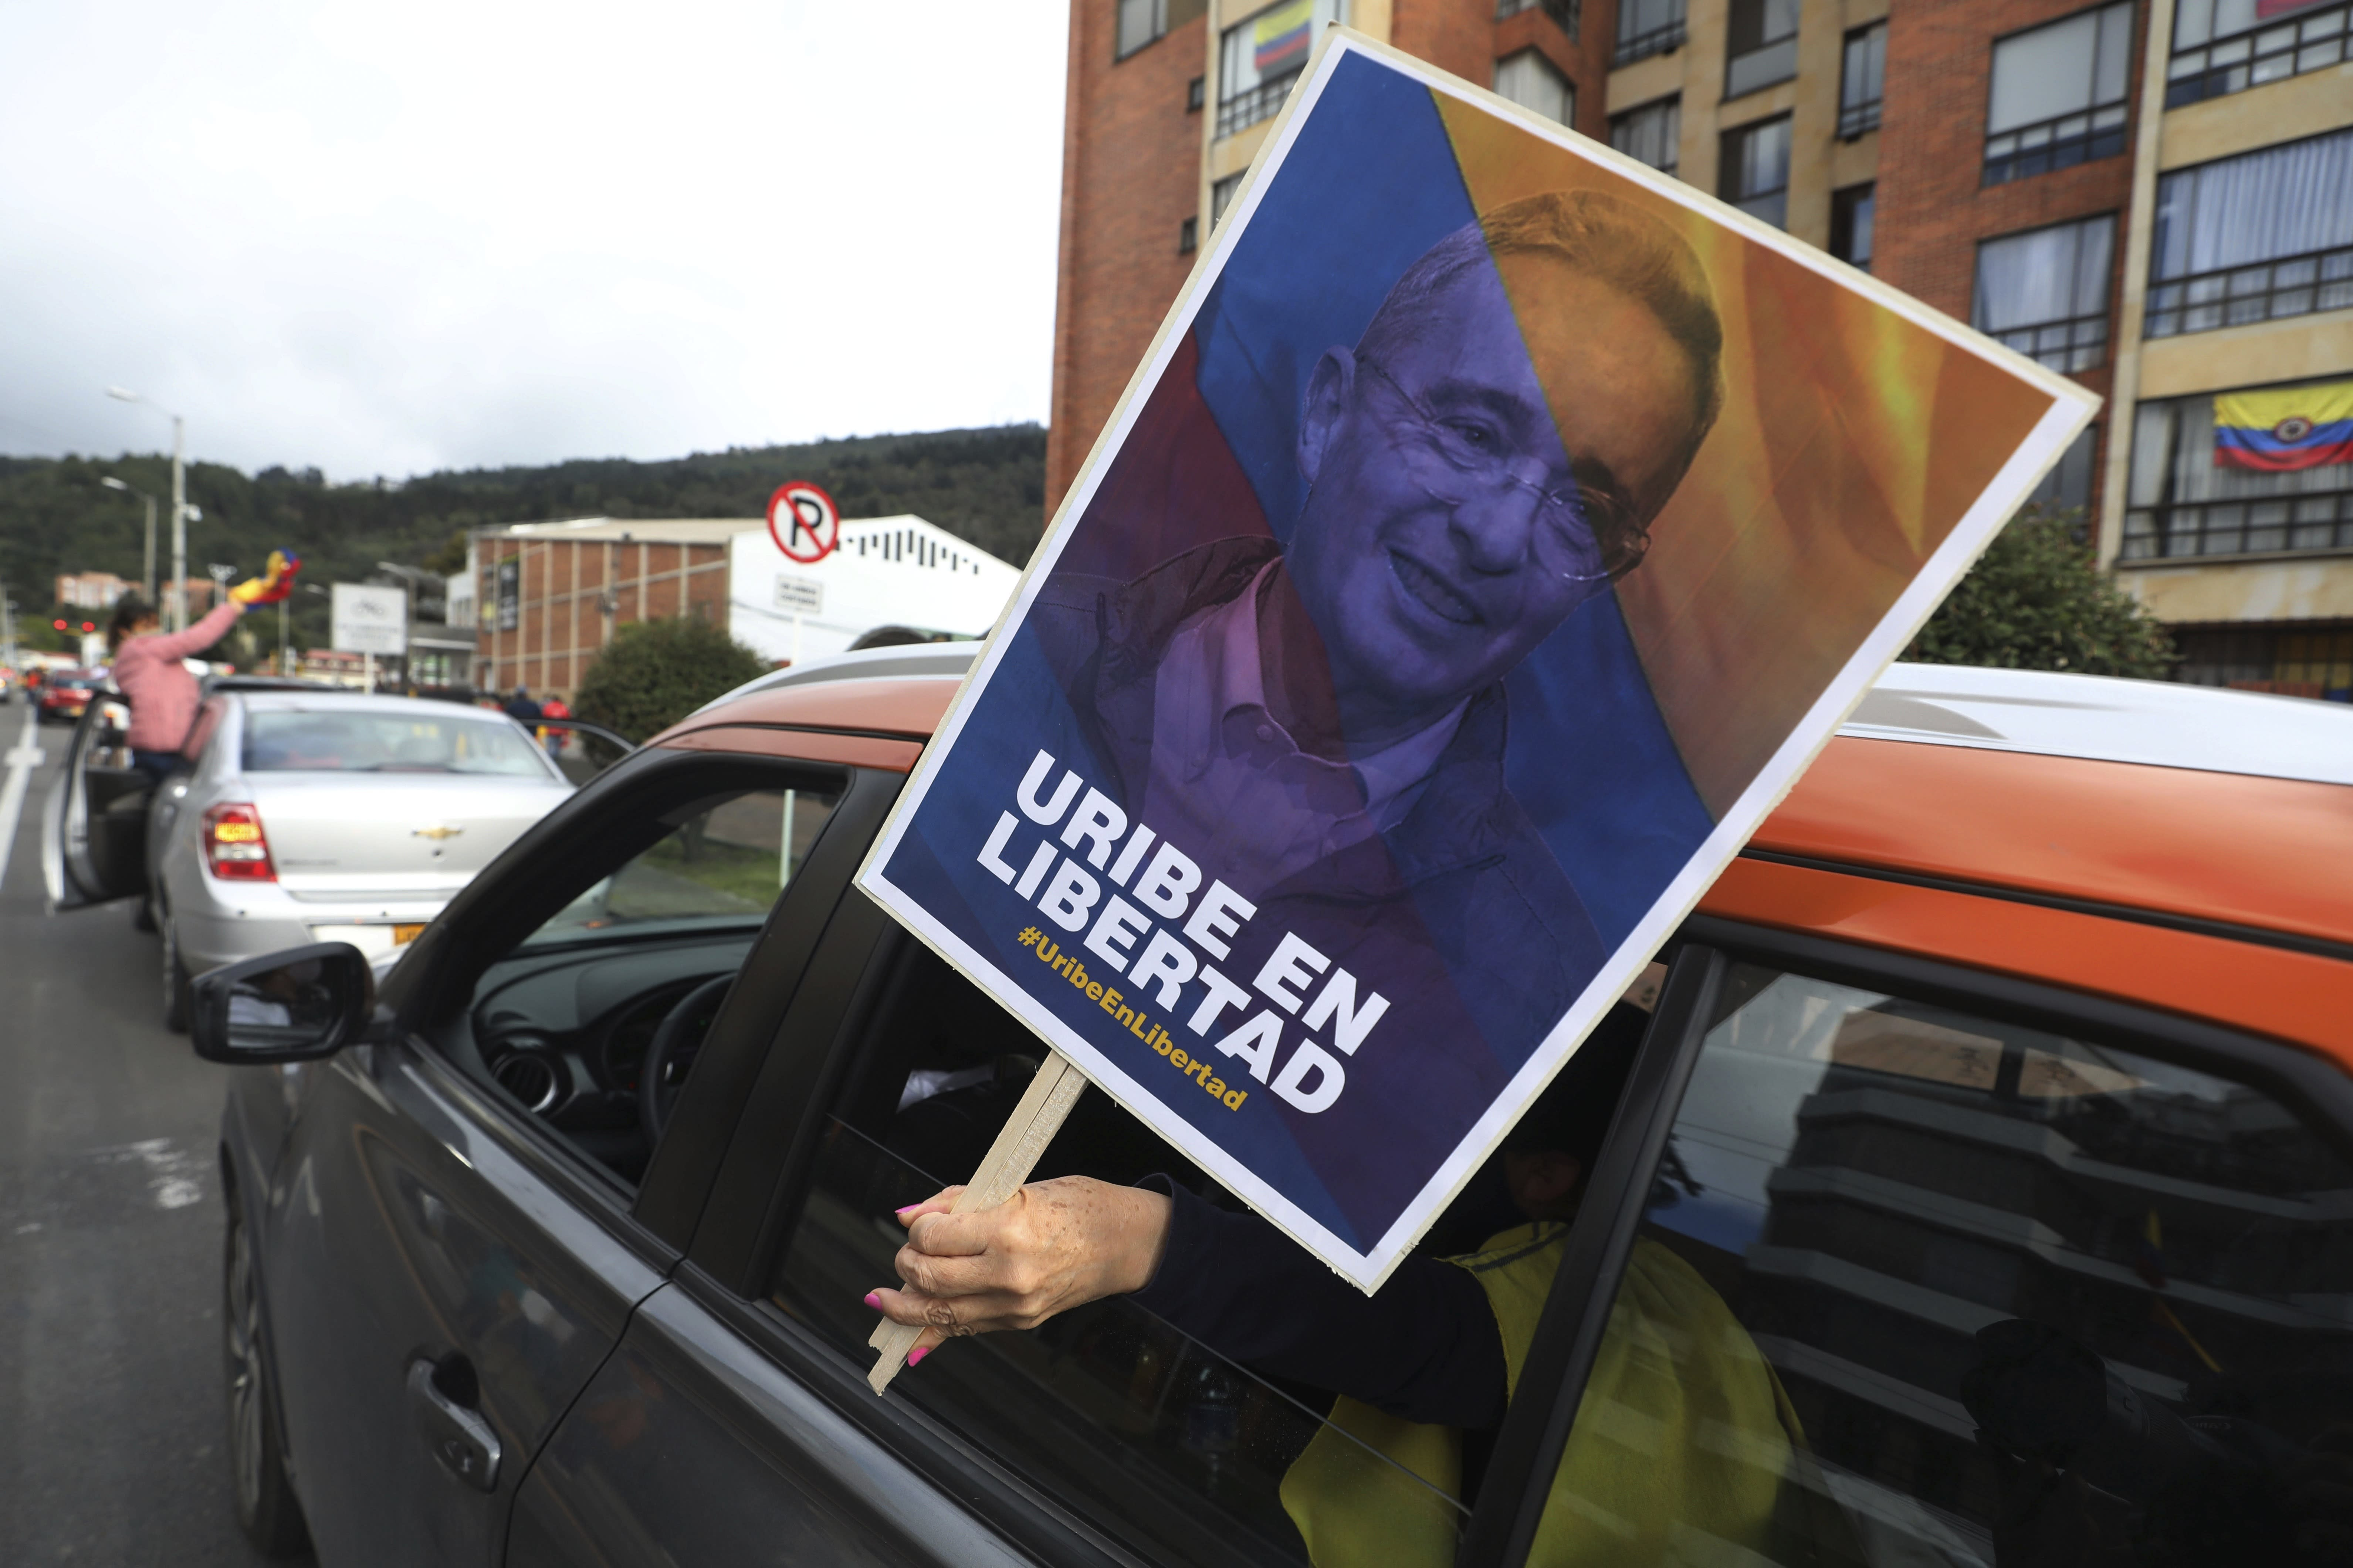 """A supporter of former President Alvaro Uribe holding a banner with an image of him with a message that reads in Spanish: """"Free Uribe"""", takes part in caravan to protest the Supreme Court decision to place Uribe under house arrest while it advances a witness tampering investigation against him, in Bogota, Colombia, Friday, Aug. 7, 2020. (AP Photo/Fernando Vergara)"""